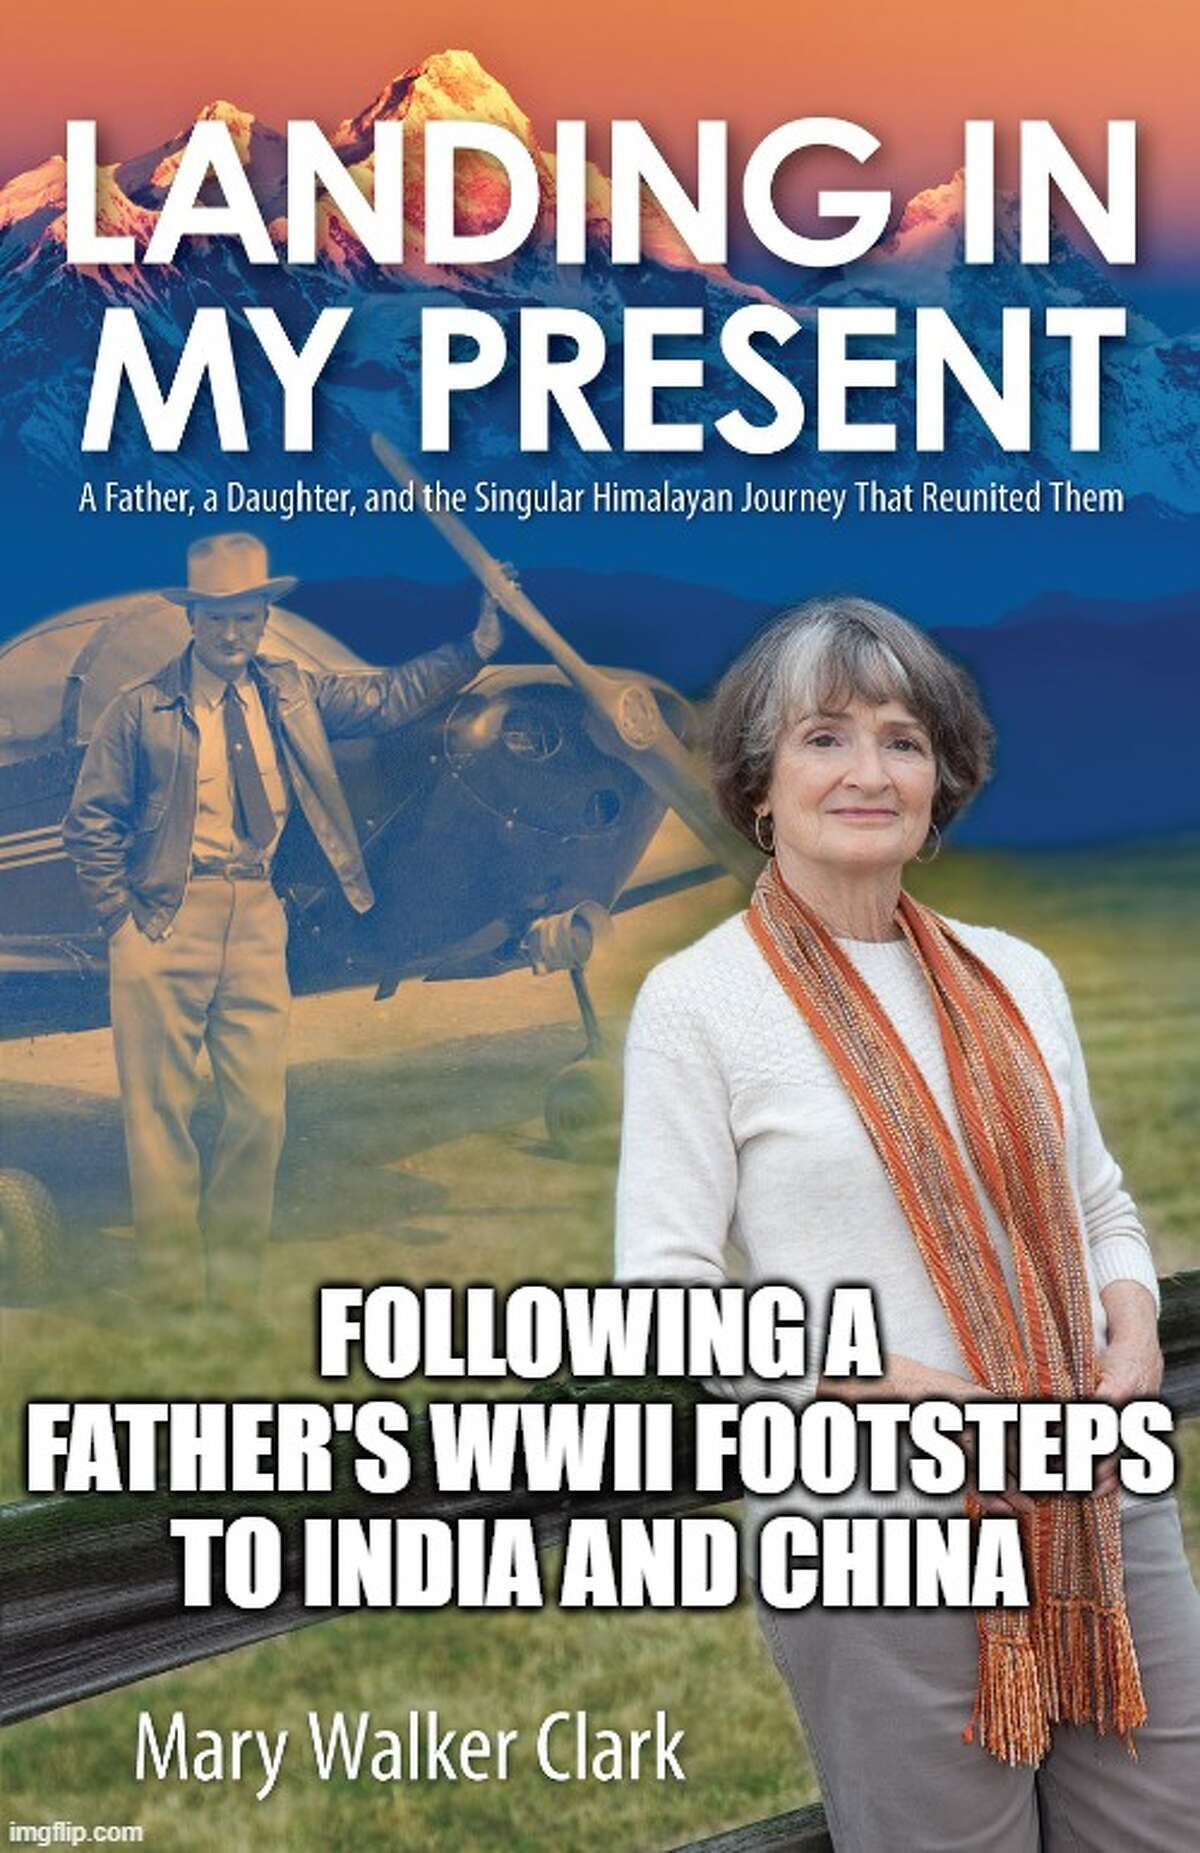 Mary Walker Clark, formerly of Plainview, released a book this week chronicling her father's, former U.S. Army Airforce 2nd Lieutenant Charles Walker, life as a soldier during World War II.